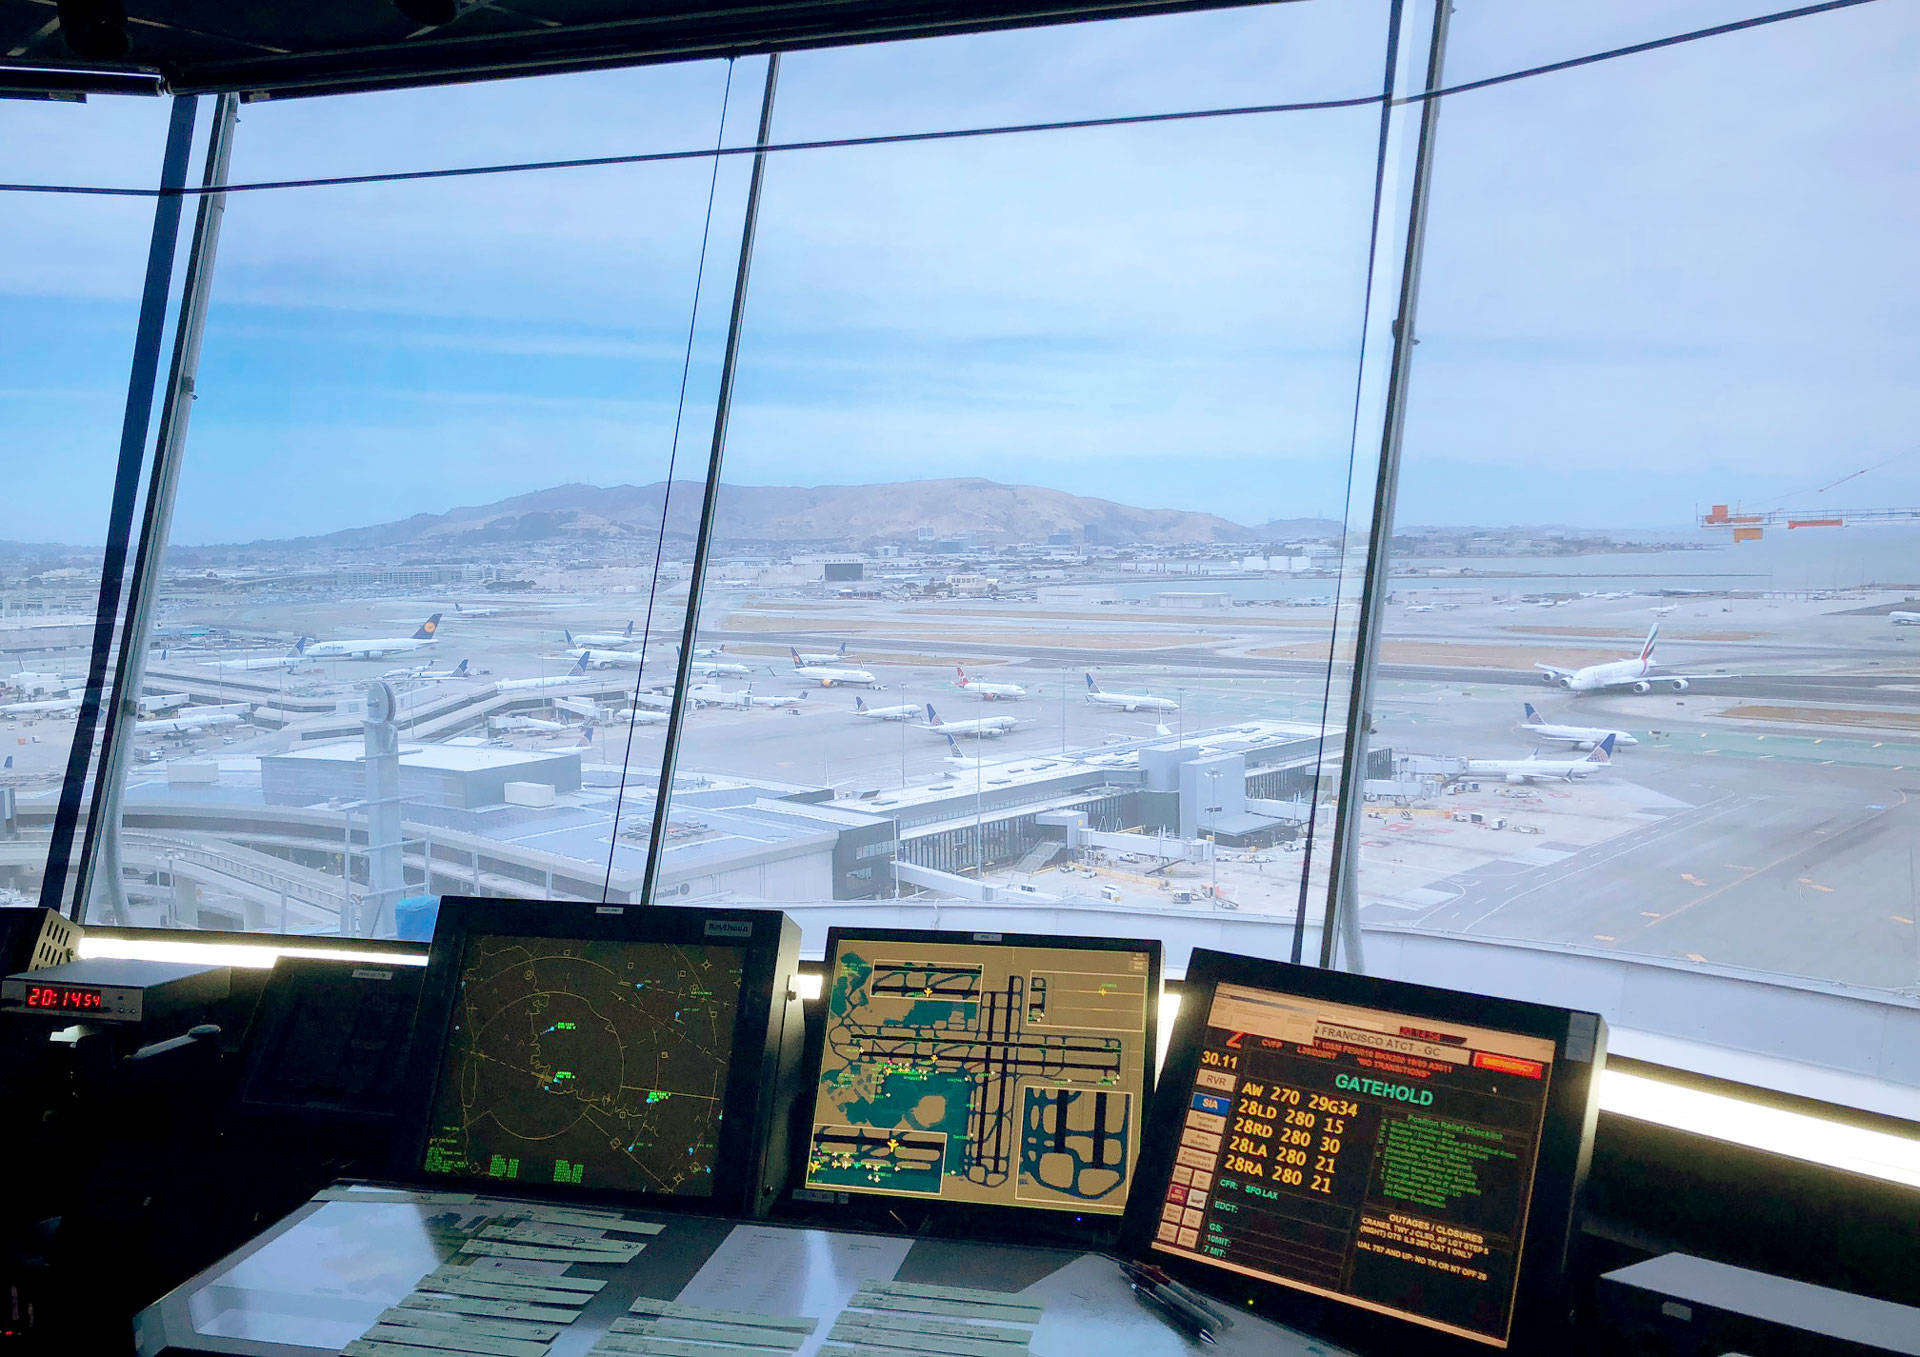 An air traffic controller's view looking northwest from San Francisco International Airport's control tower. Air traffic controllers at SFO and across the nation won't receive a paycheck on Friday due to the partial government shutdown. Courtesy of Frederick Naujoks